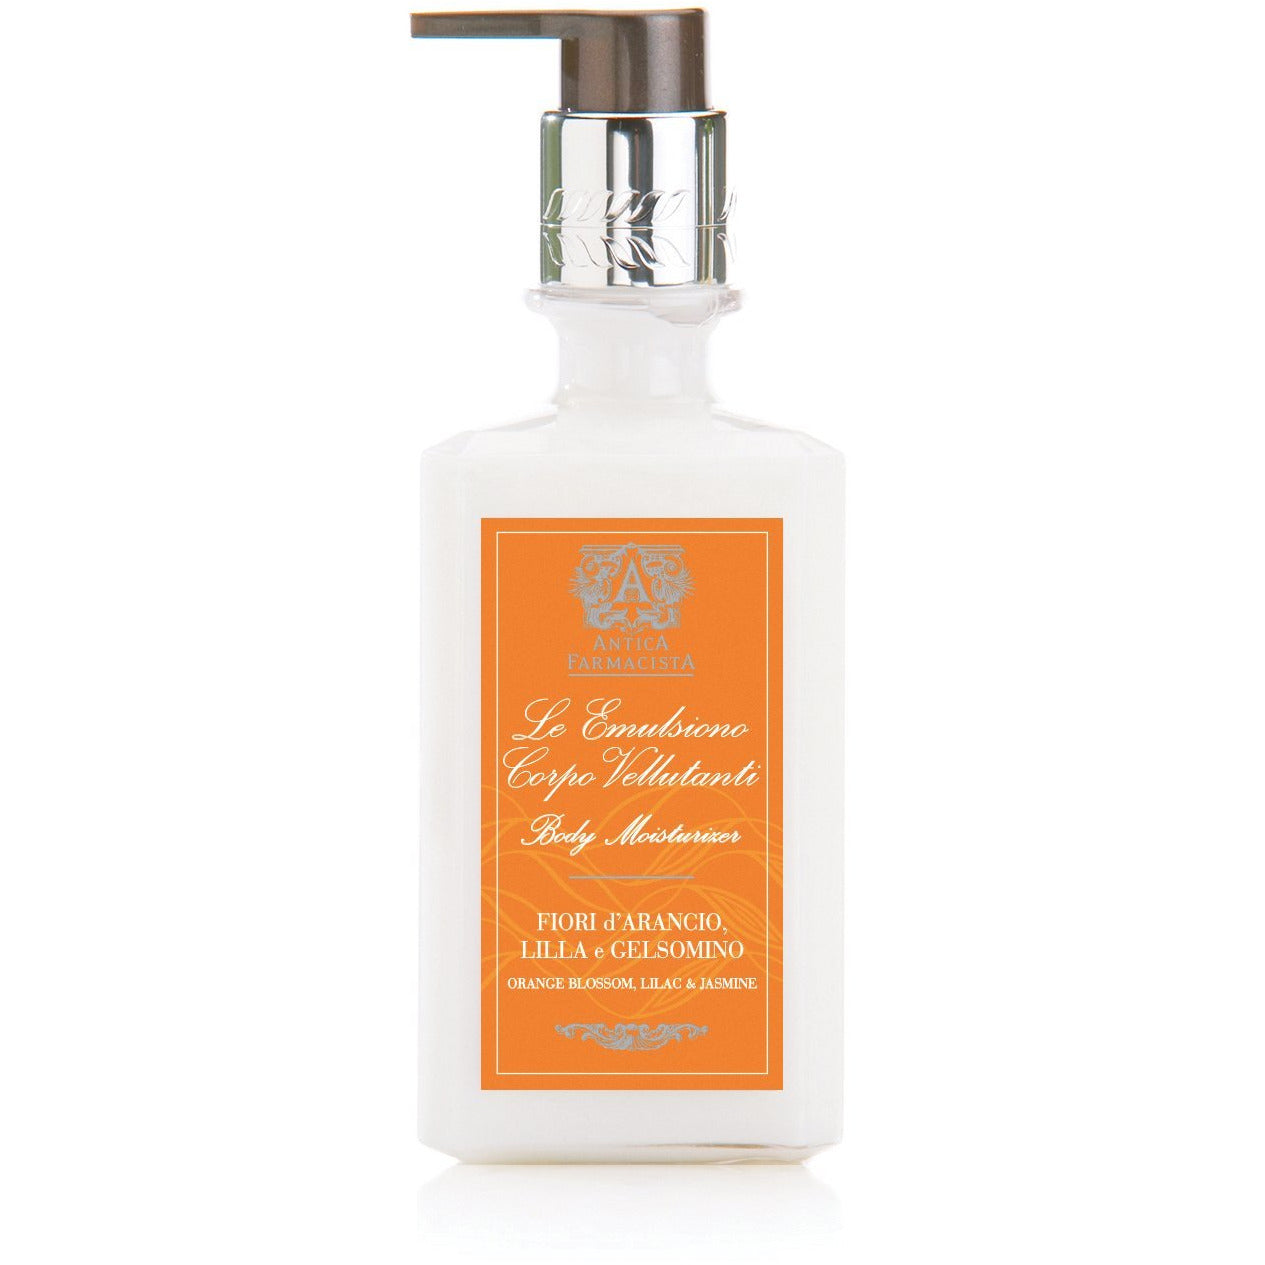 Body Moisturizer Orange Blossom